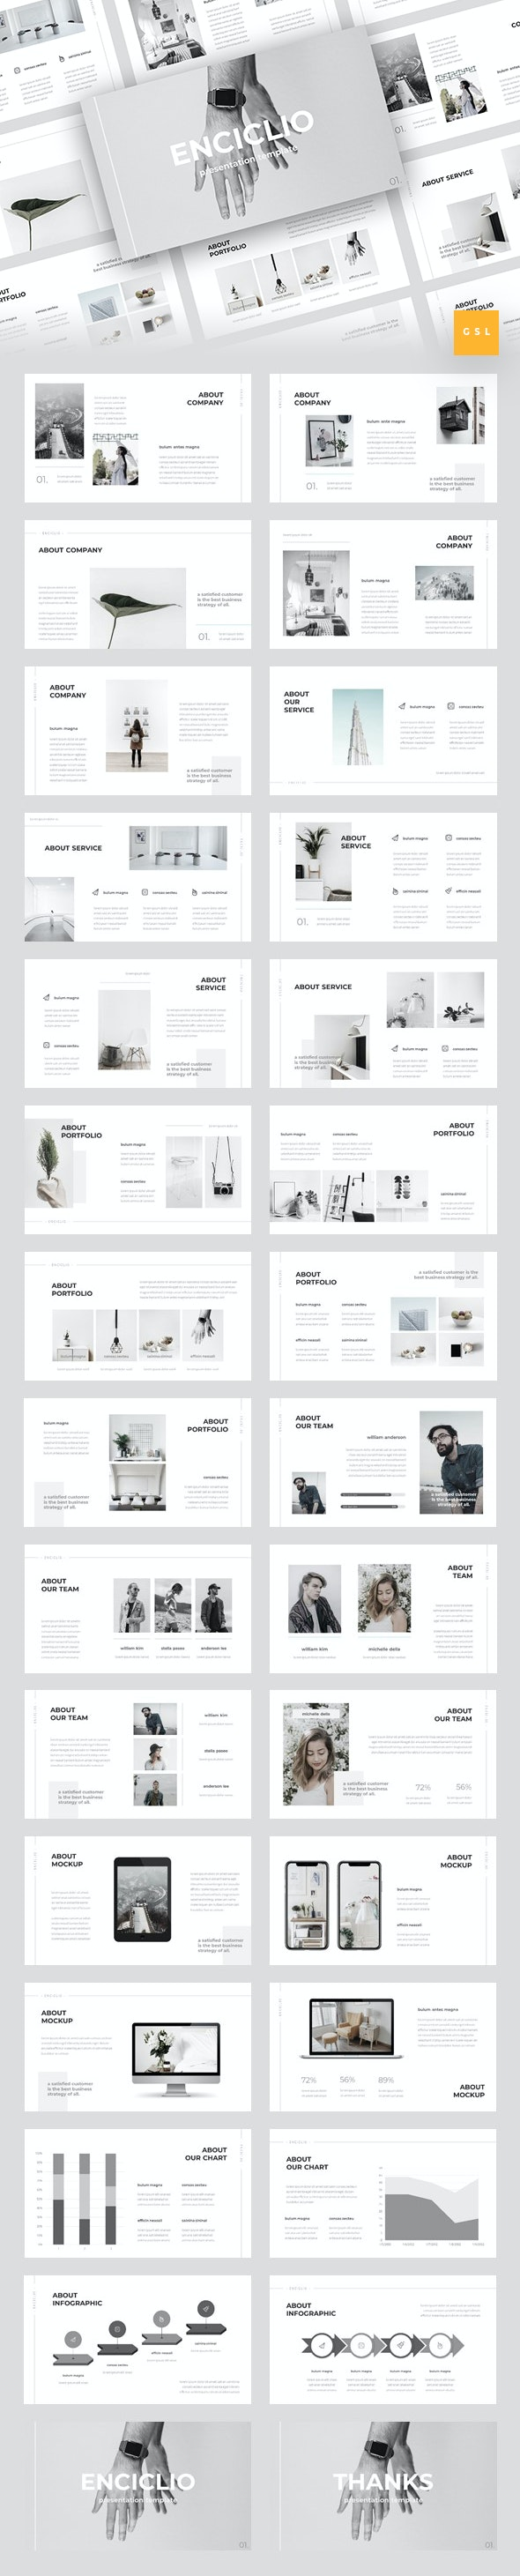 Enciclio - Creative Google Slides Template - Google Slides Presentation Templates